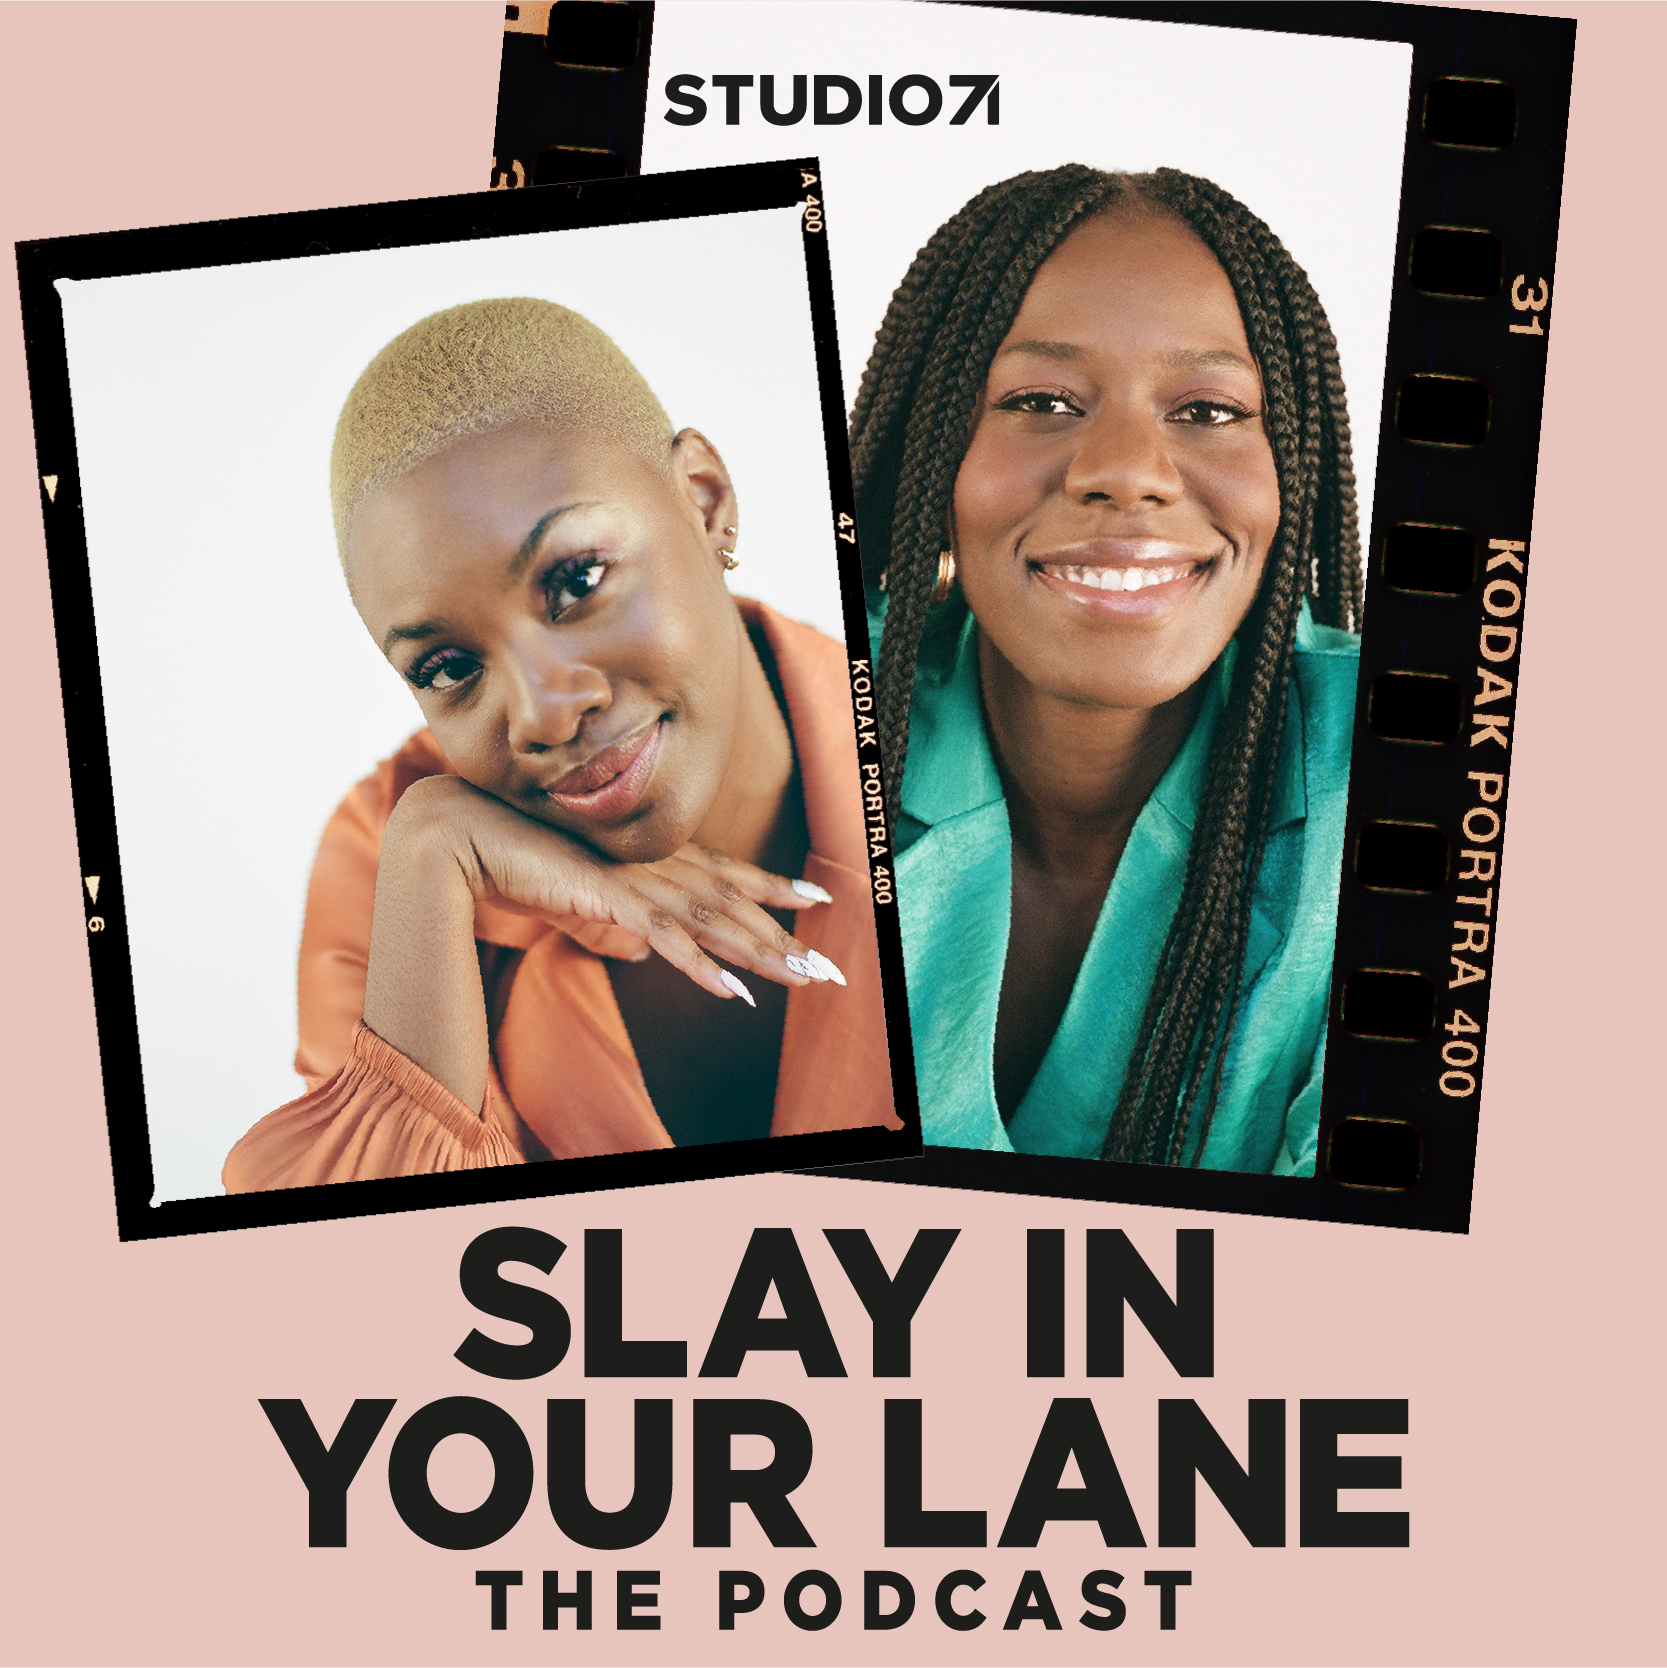 Artwork for Slay in Your Lane: The Podcast from Studio71 UK